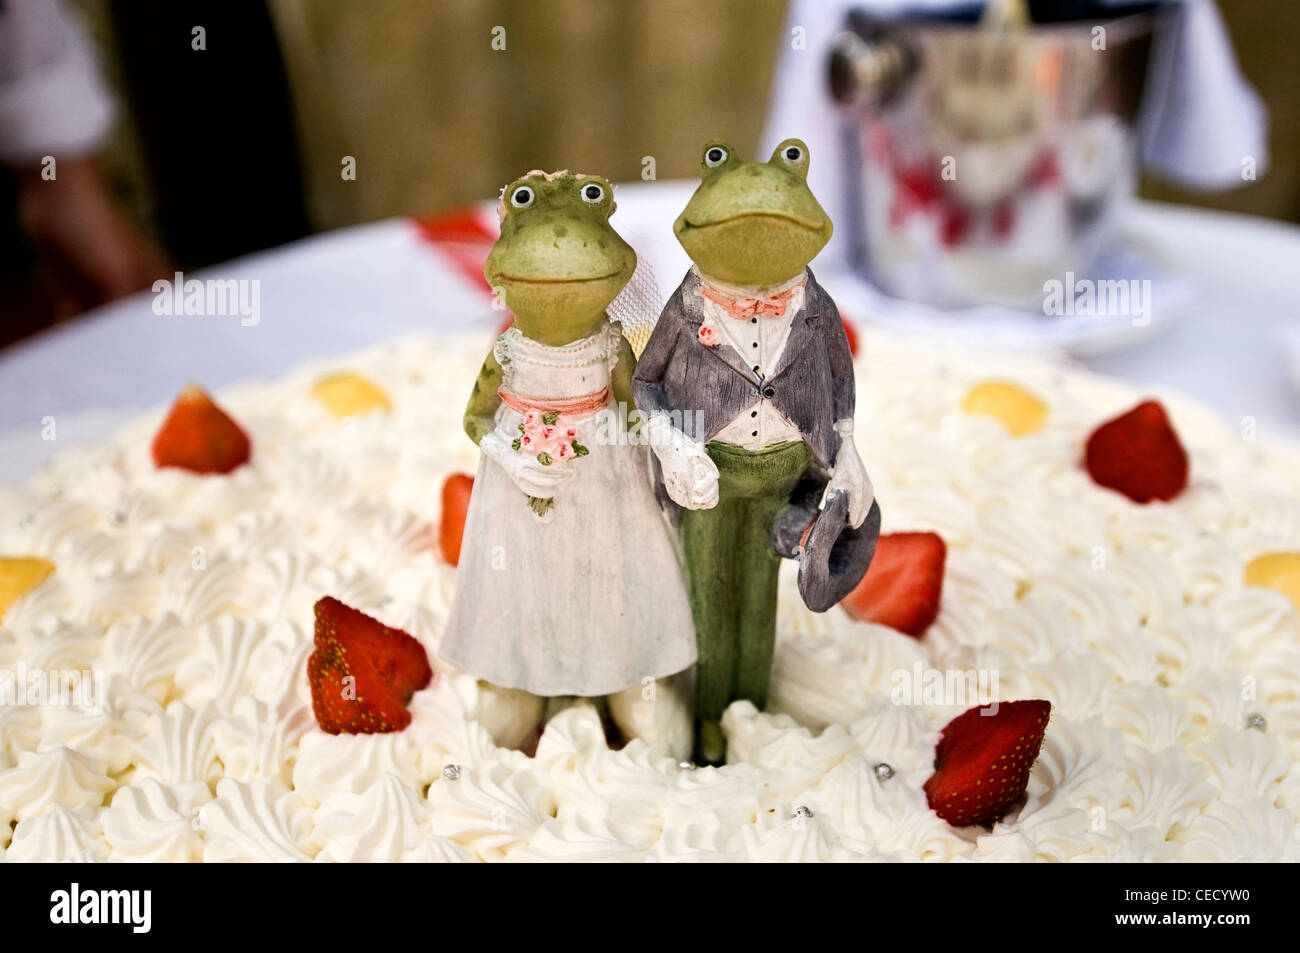 frog wedding cake topper at an italian wedding Stock Photo